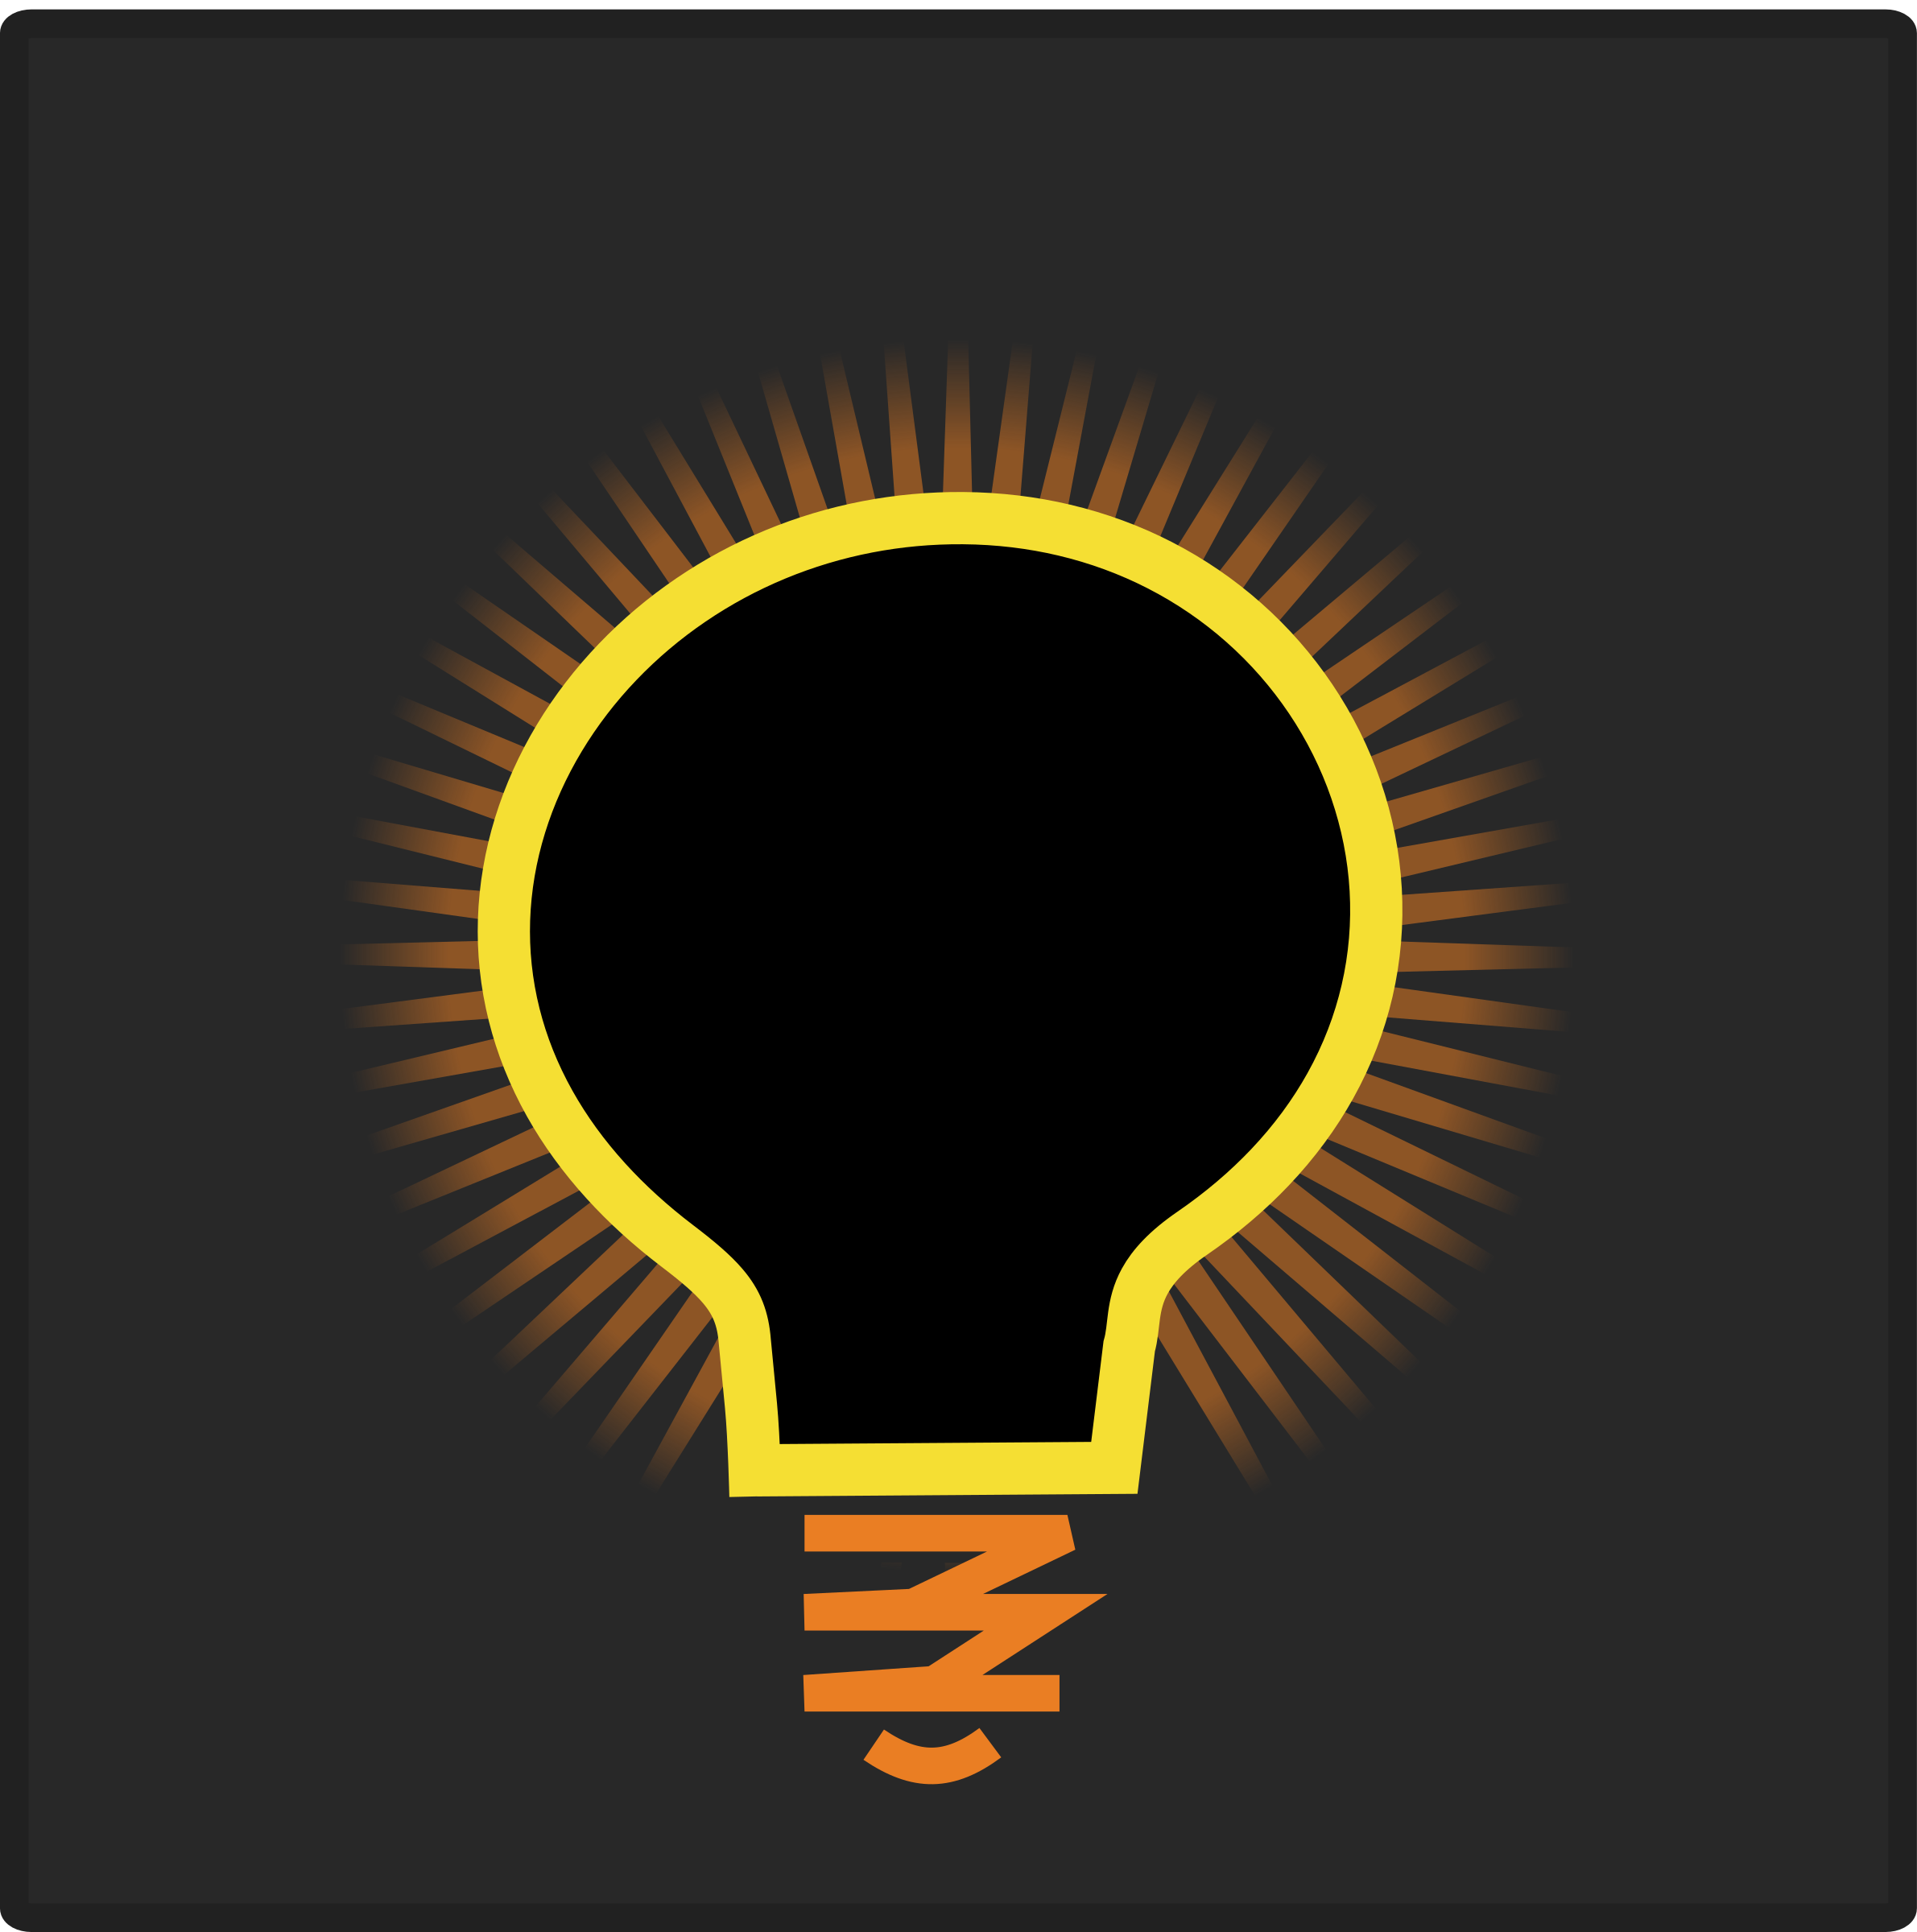 Bulb icon by ben